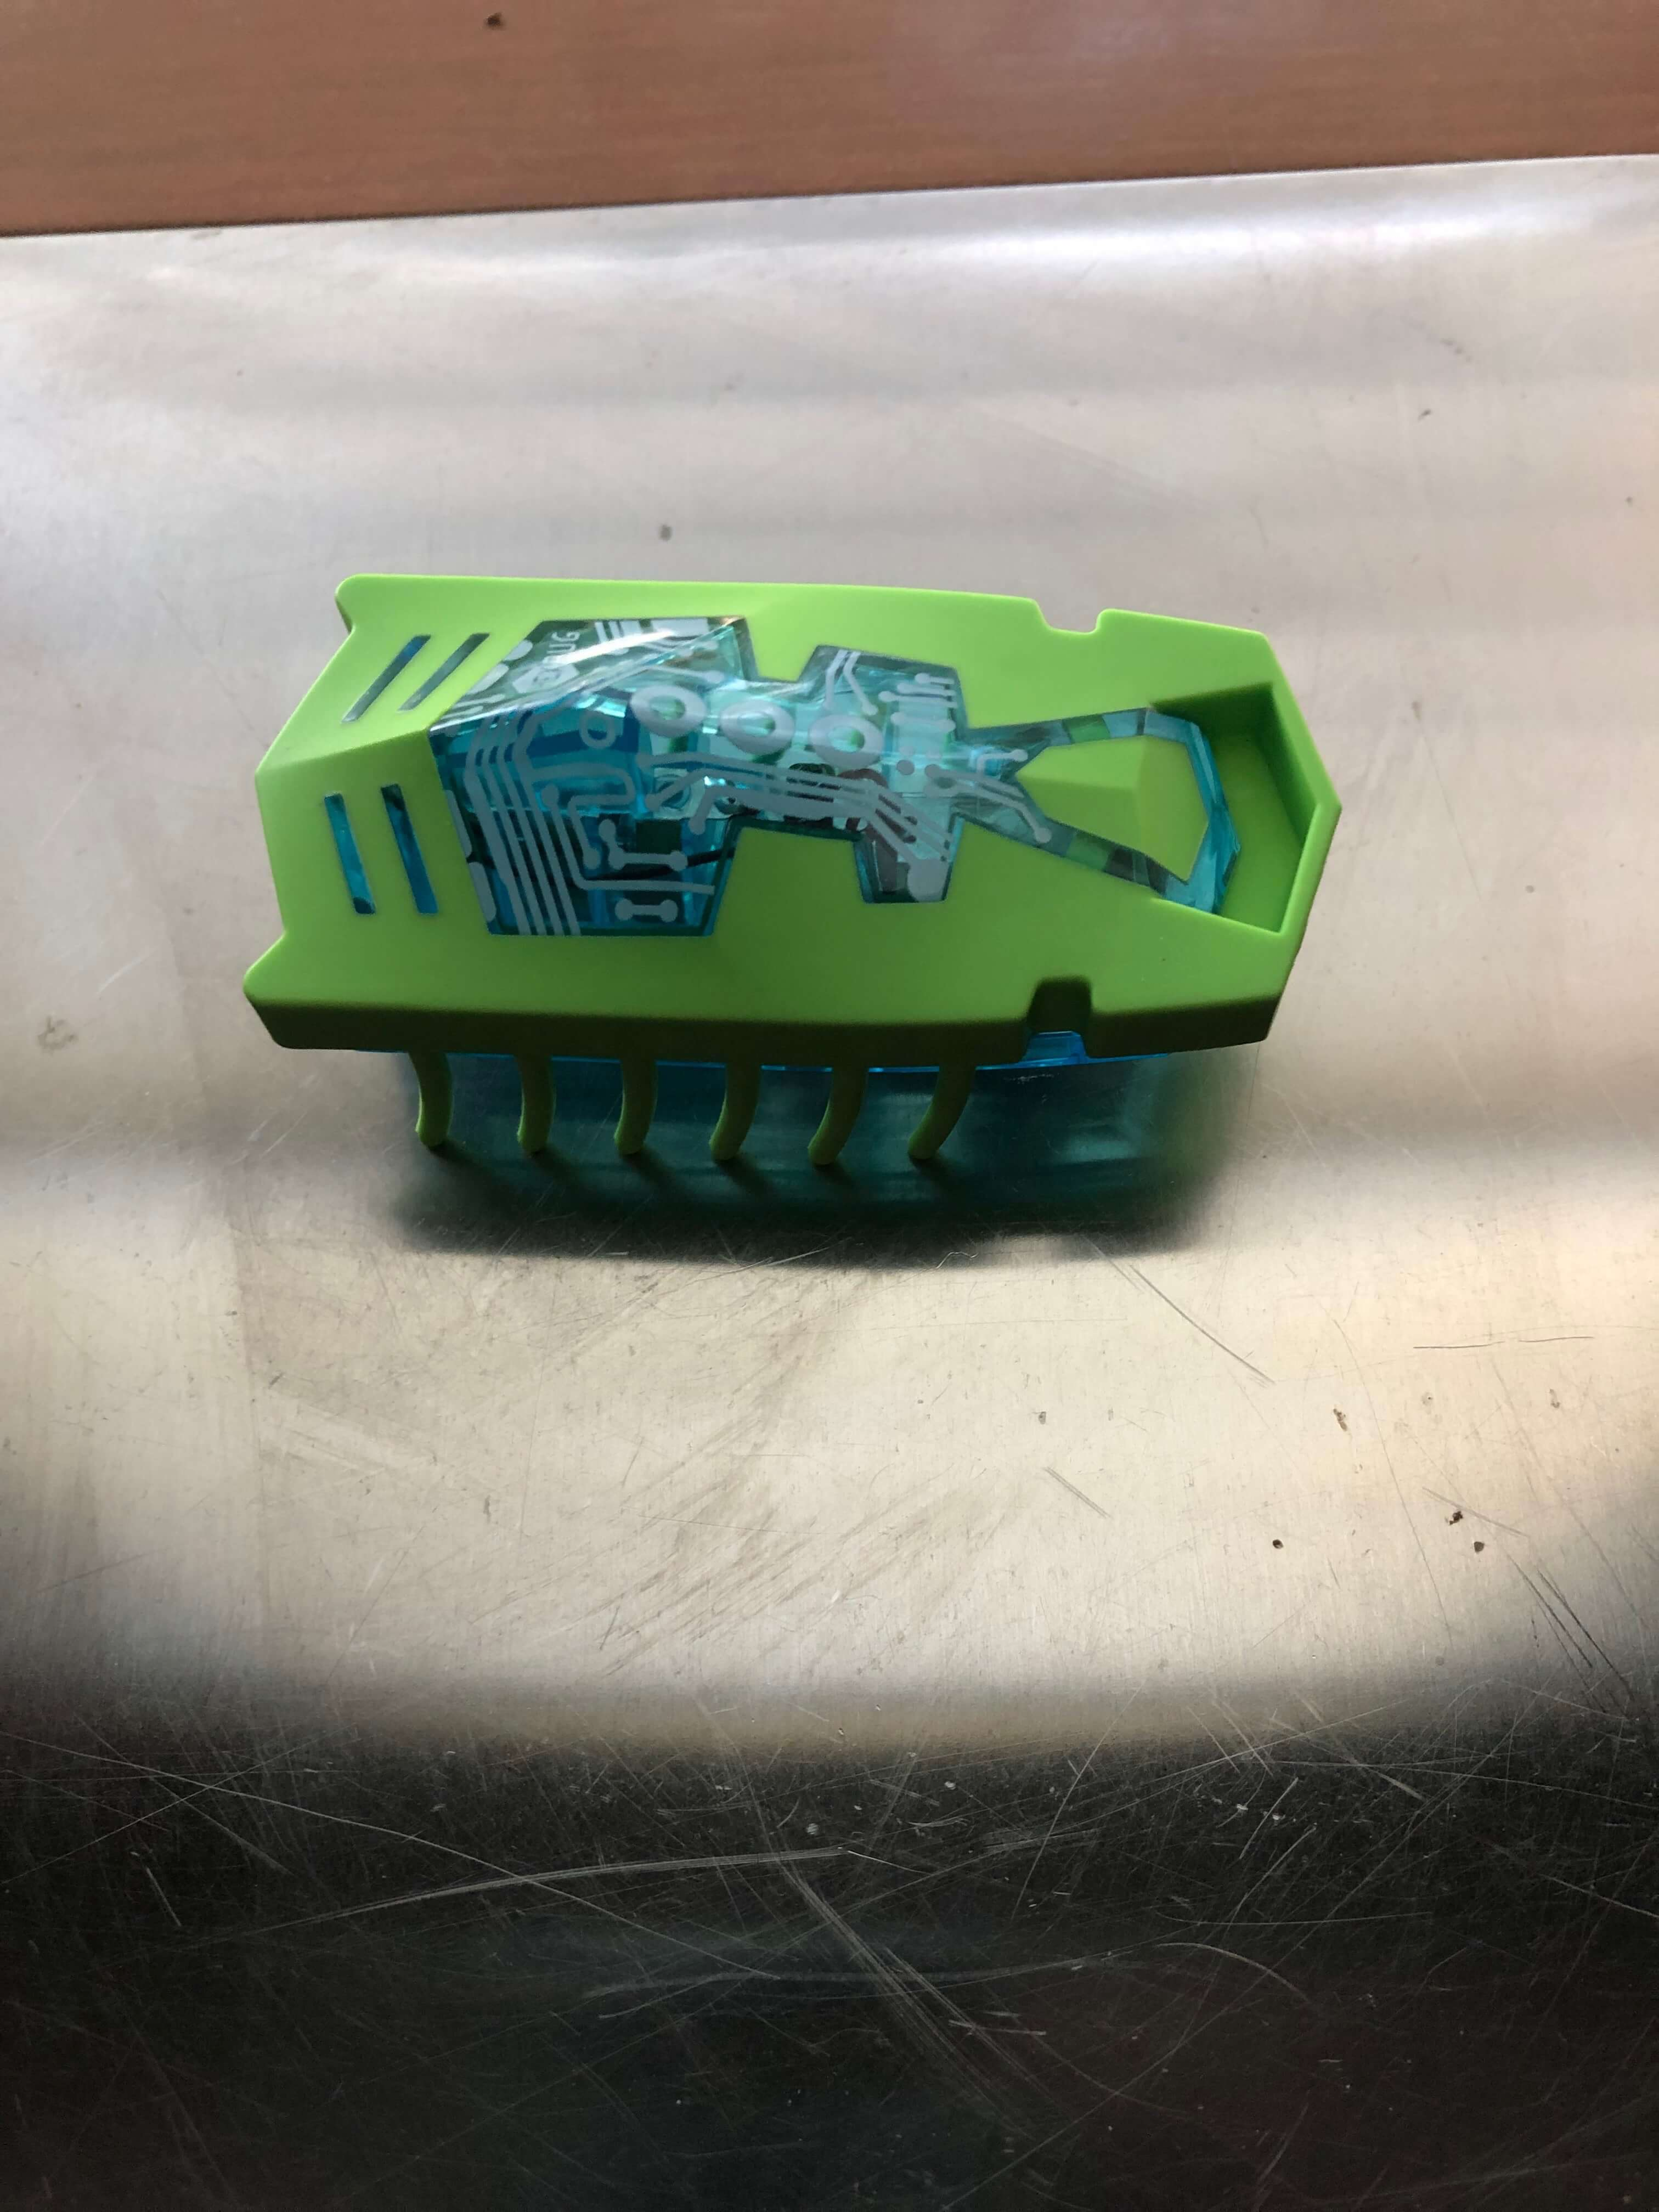 Read more about the article My New HexBug